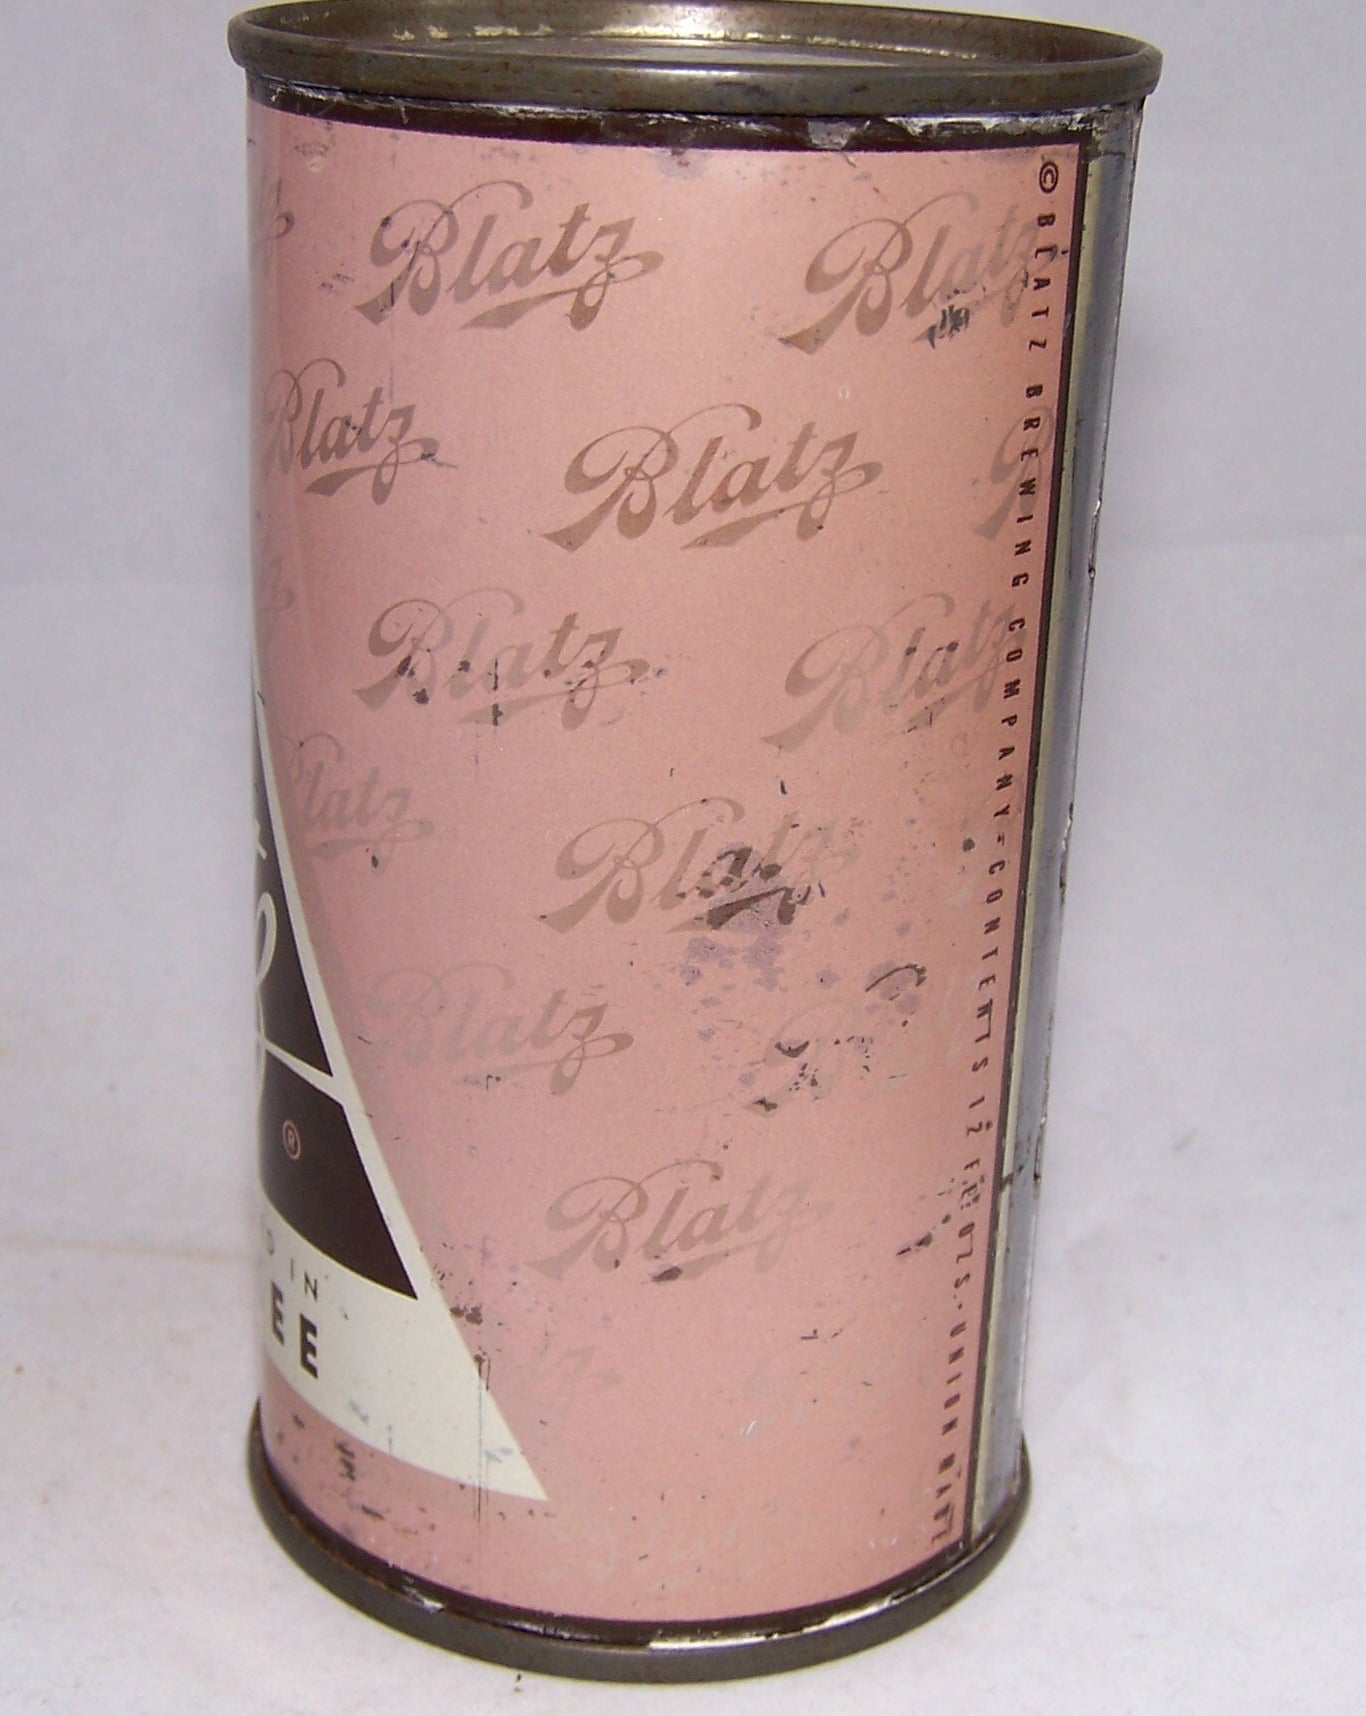 Blatz set can (Pink) USBC 39-15, Grade  1- Sold on 09/10/17